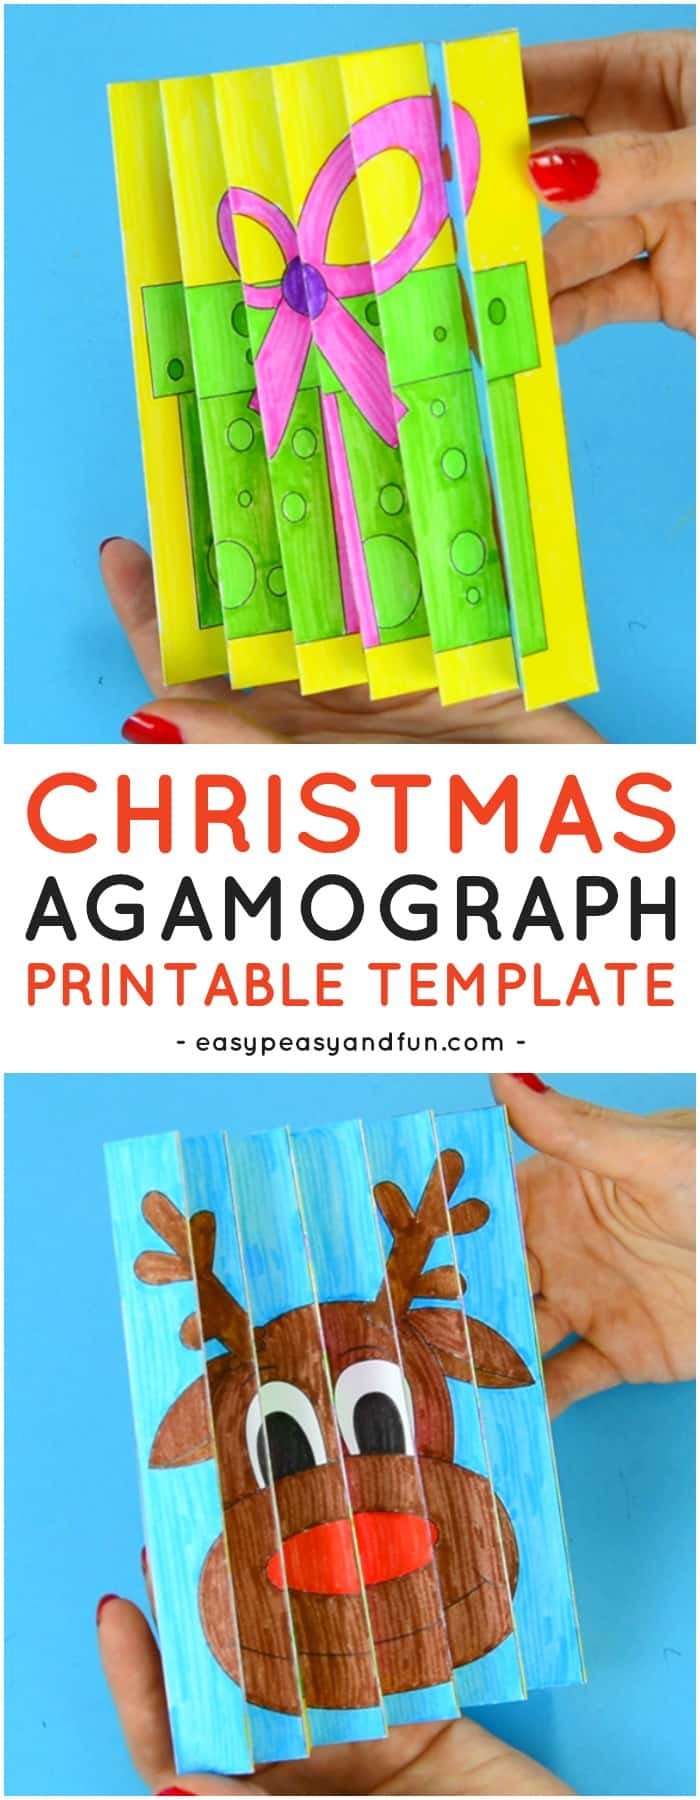 Christmas Agamograph Printable Template for Kids. Fun Christmas Printable Activity for Kids.